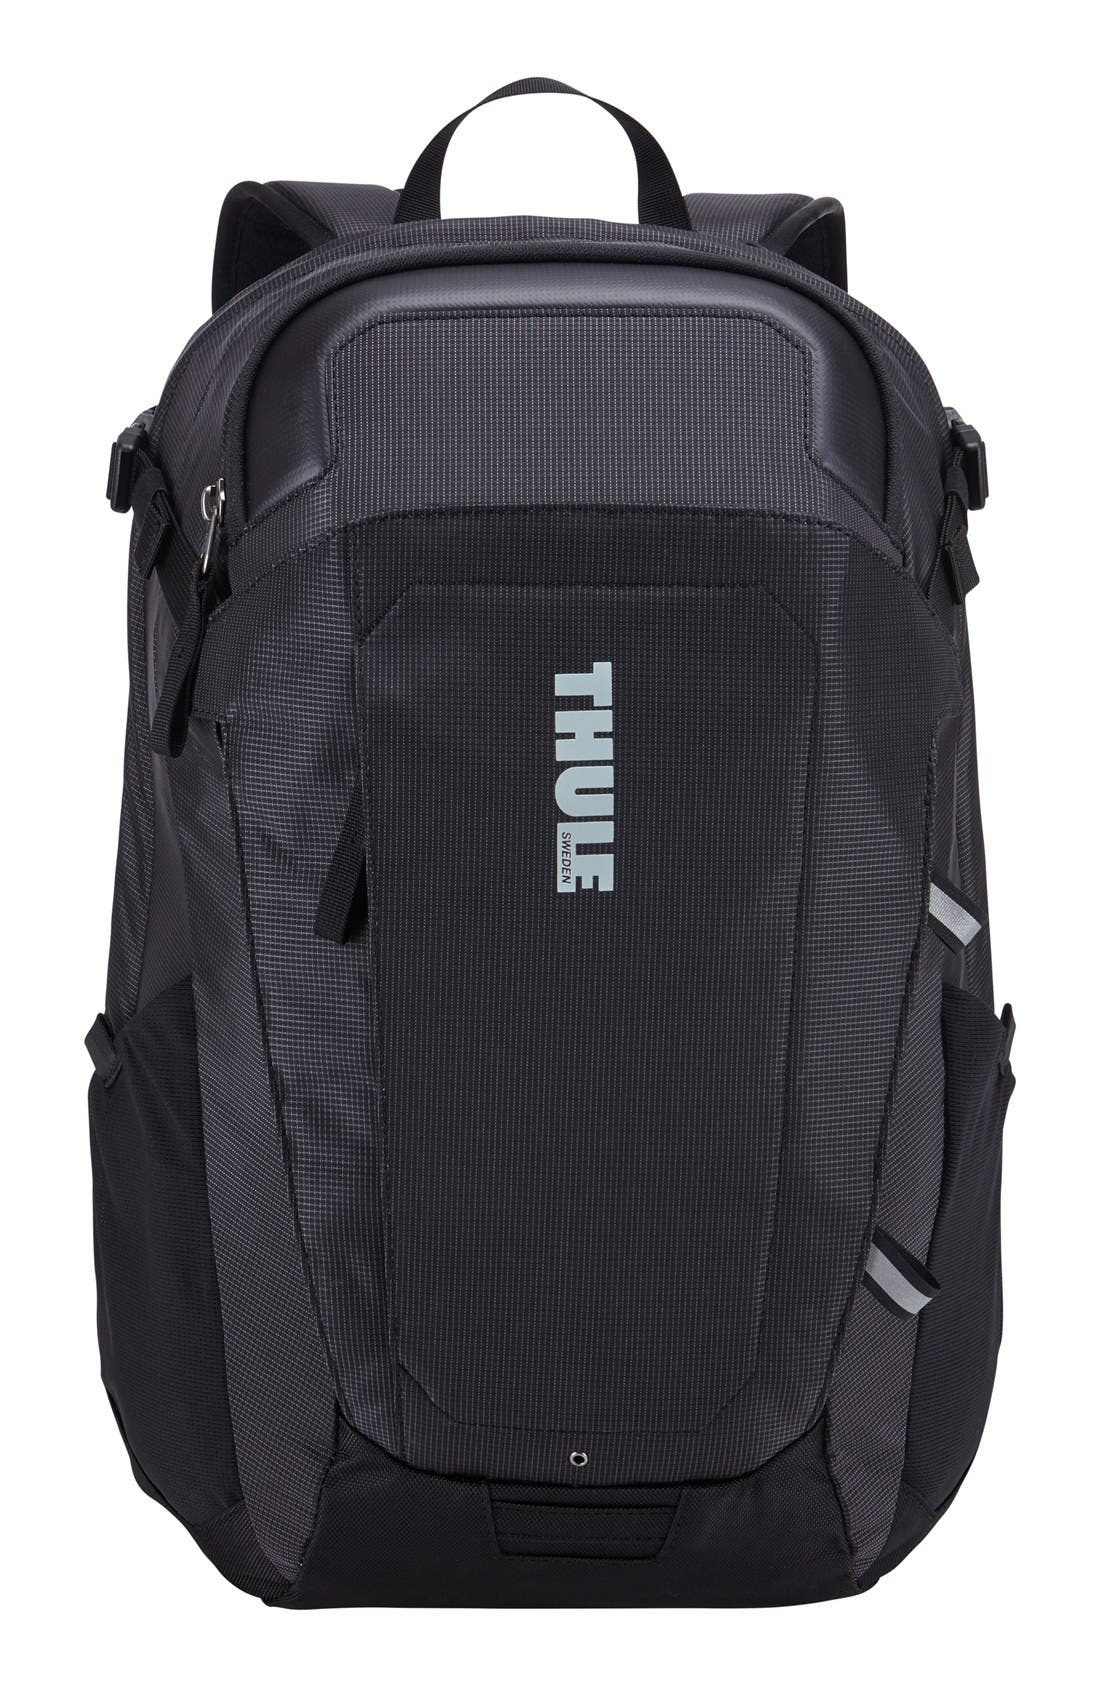 Main Image - Thule EnRoute Triumph 21-Liter Backpack